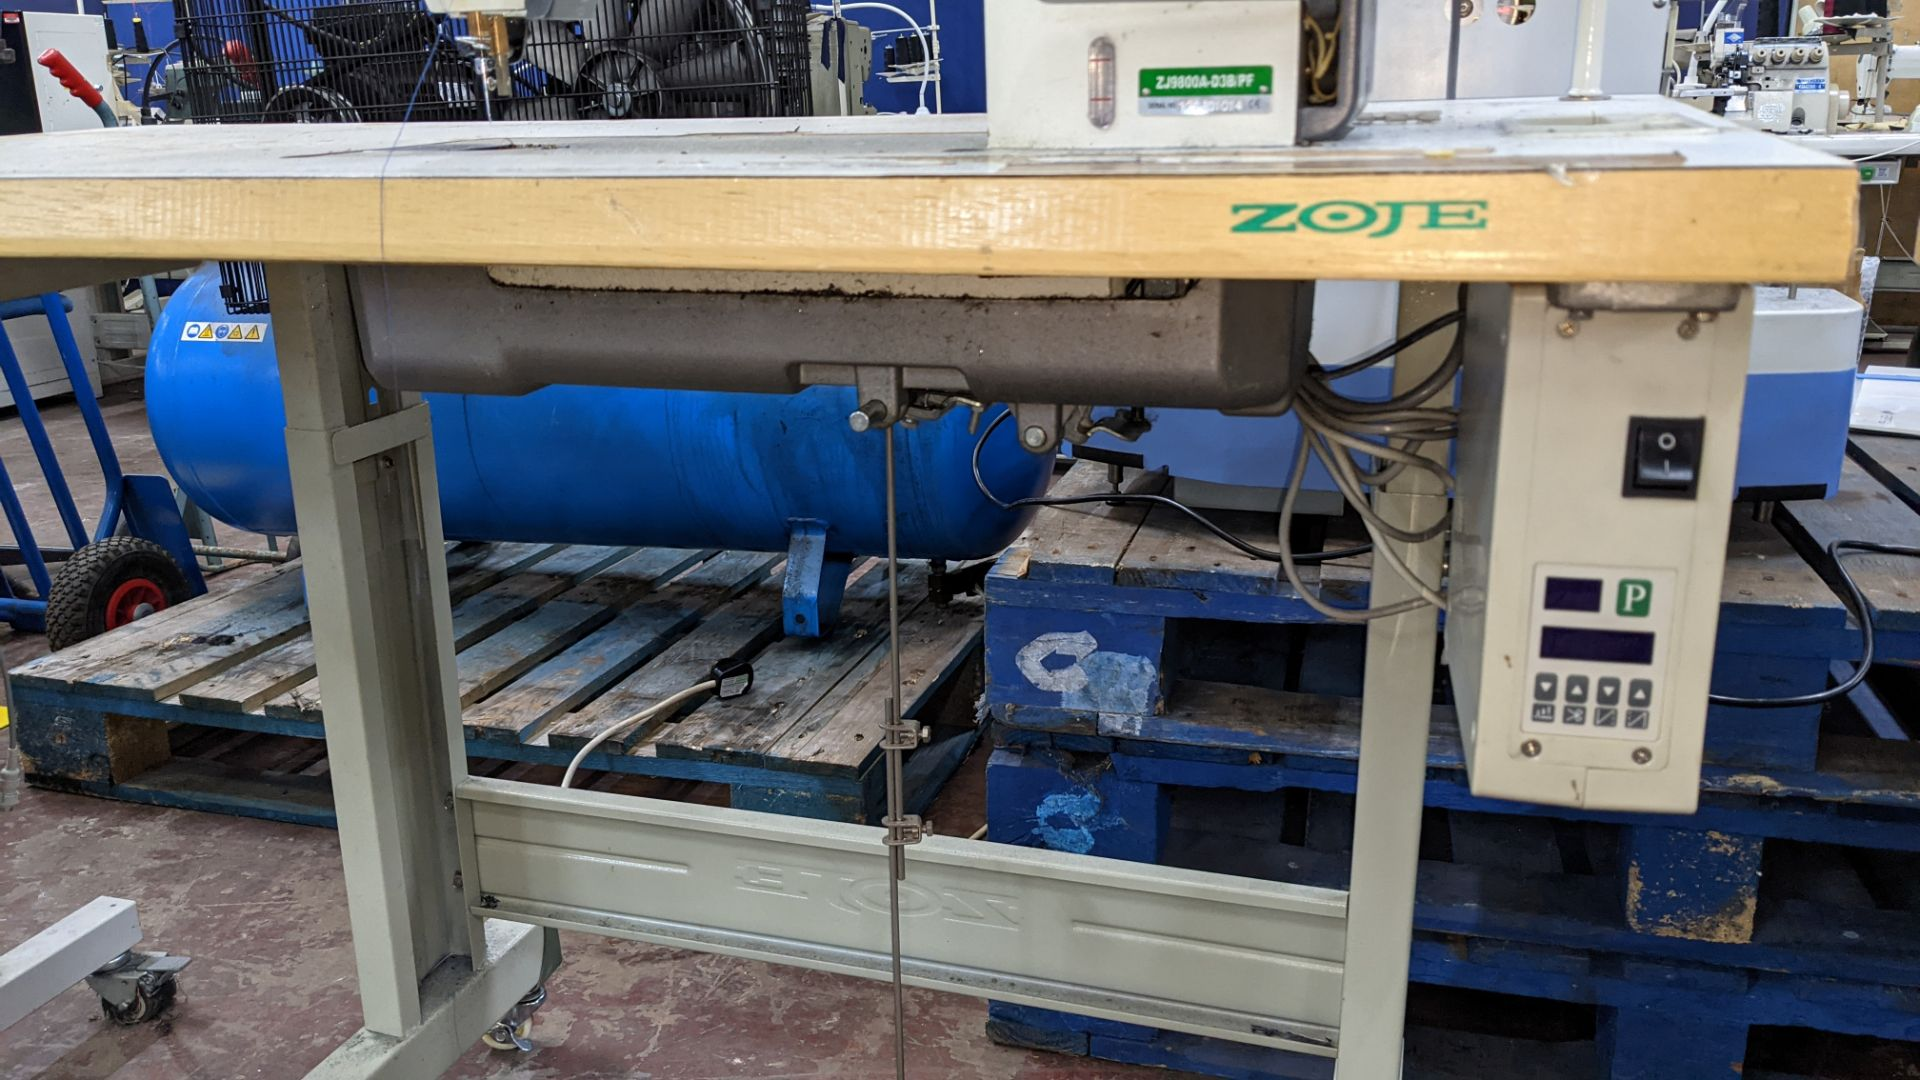 Zoje model ZJ9800A-D3B/PF sewing machine with WR-501 controller - Image 14 of 16